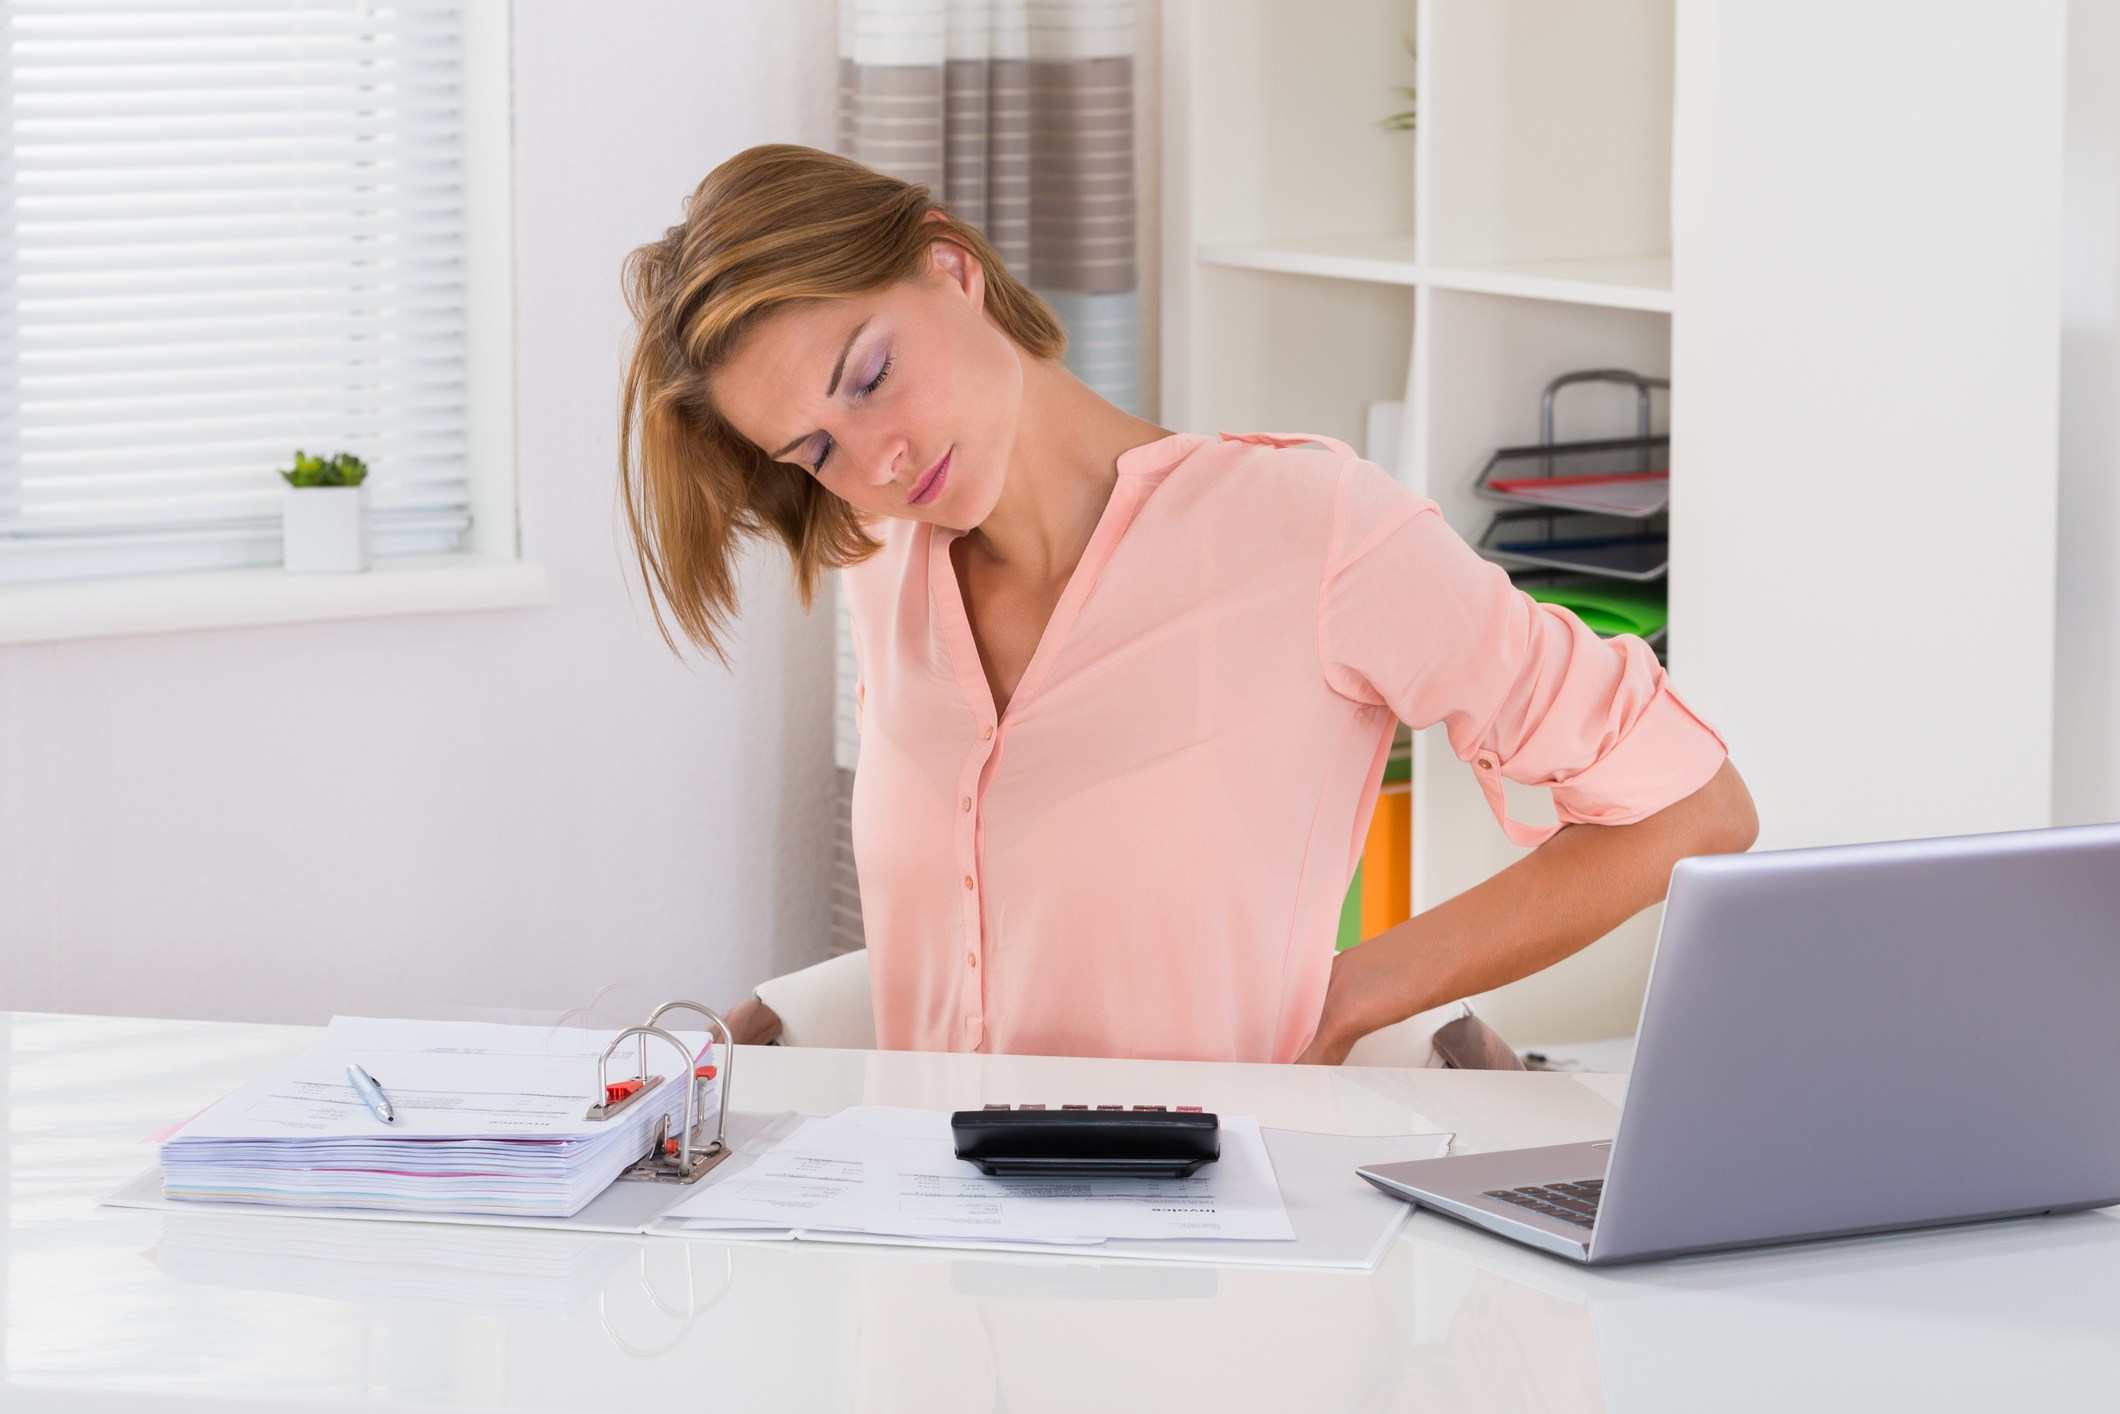 Ensure you have a good posture if you sit at a desk all day (Thinkstock/PA)